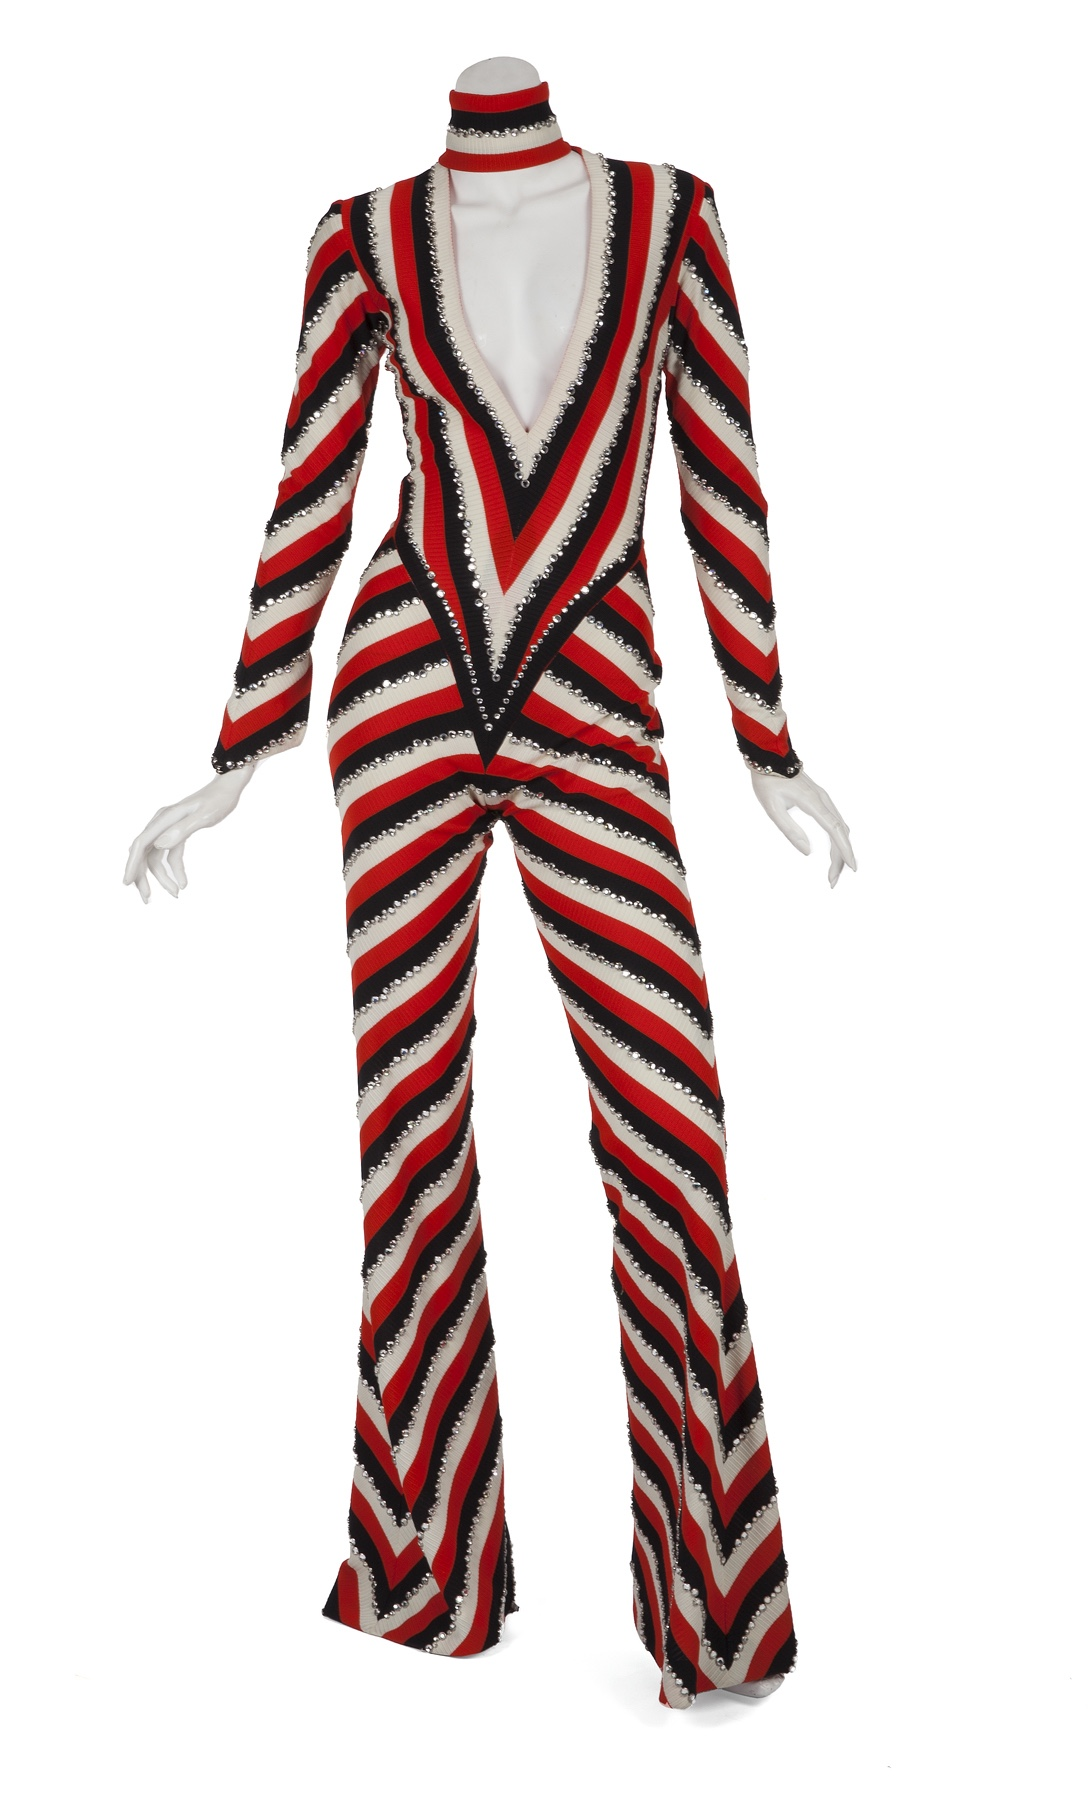 Cher striped jumpsuit by Bob Mackie for auction November 2018